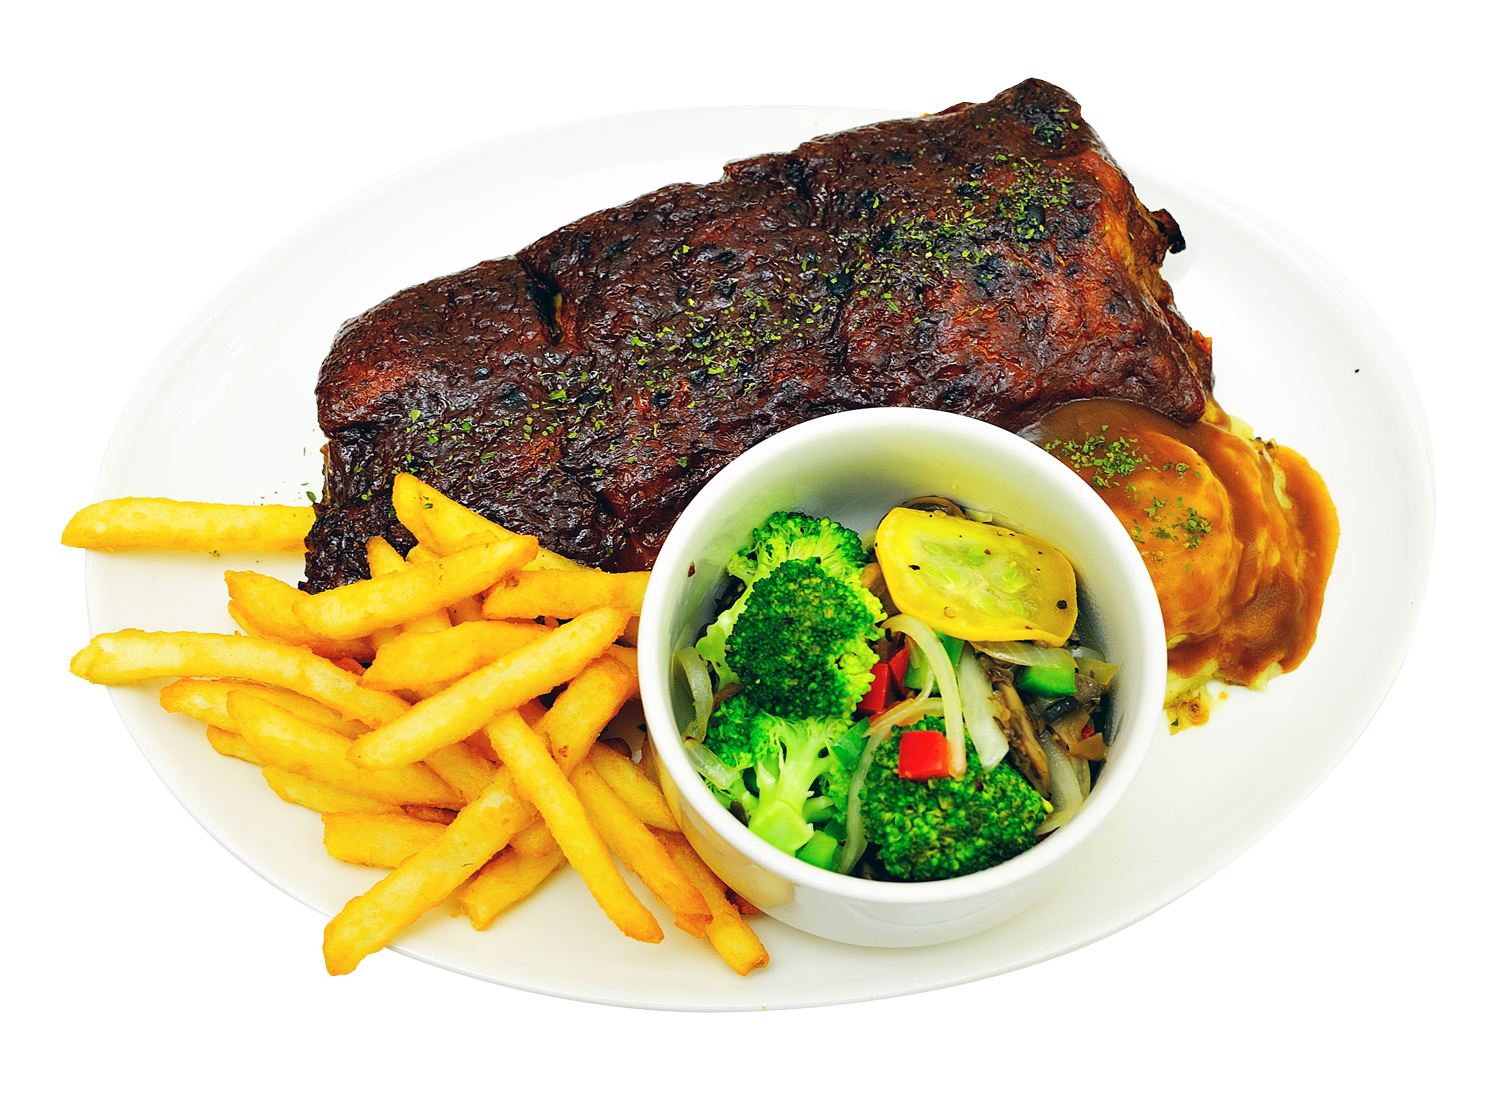 Dinner clipart meat plate. Food png image purepng